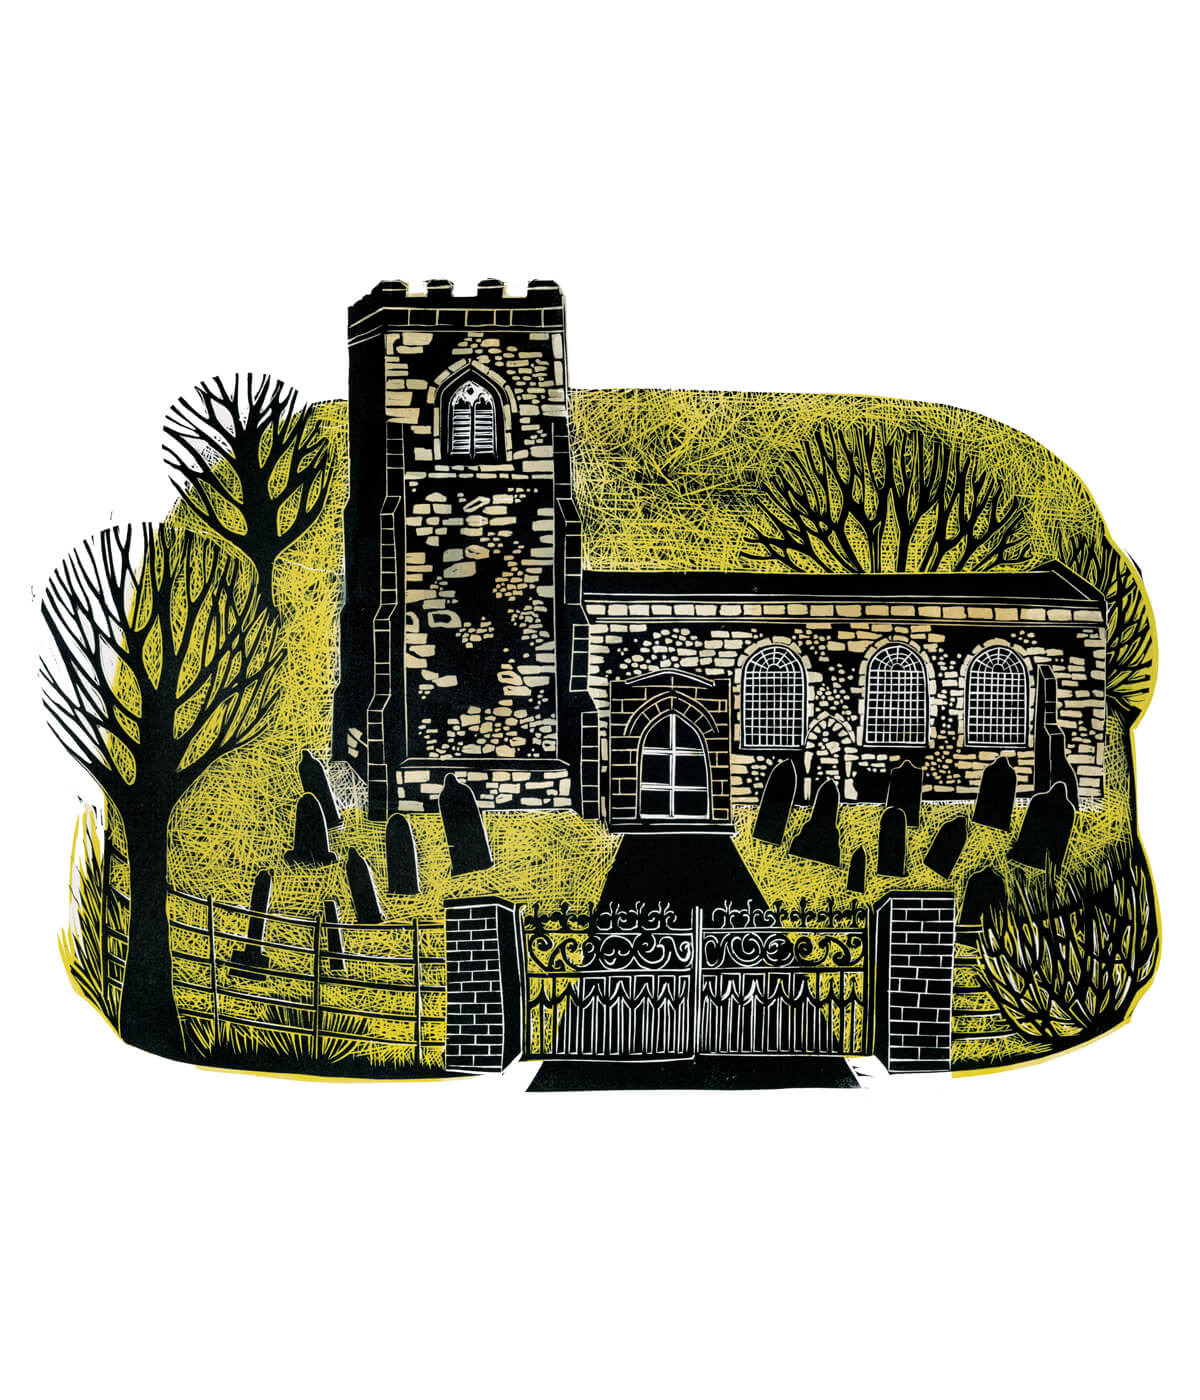 Wistow Church, a linocut print by Sarah Kirby